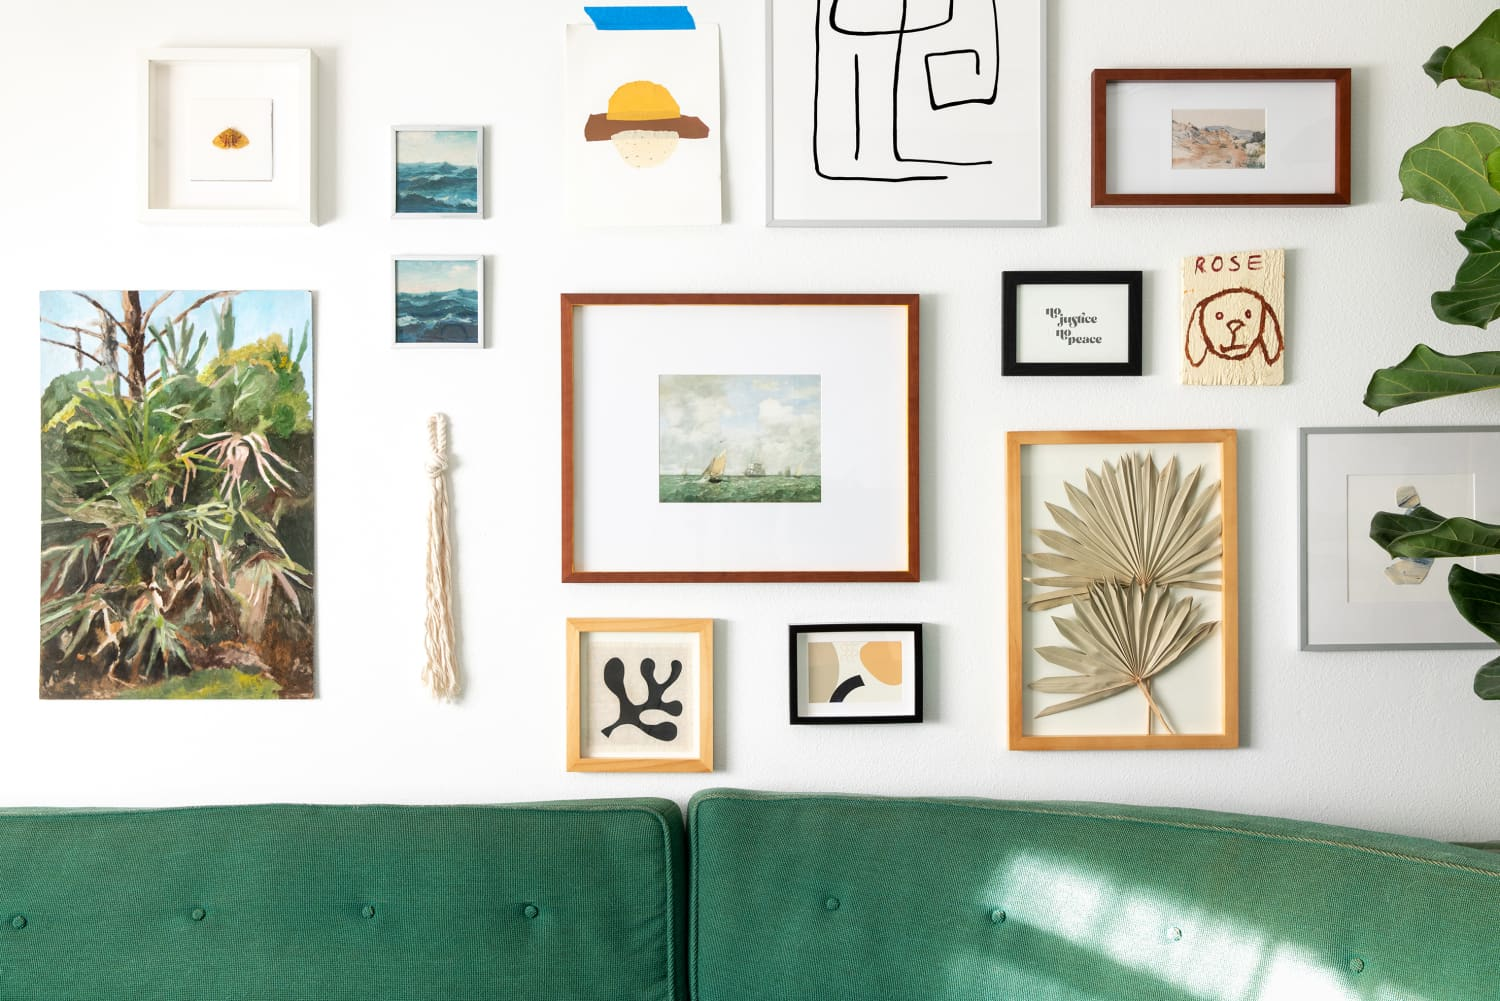 3 Easy Ways to Make Cheap Art Look More Expensive, Even if You're Not Crafty—I Promise!